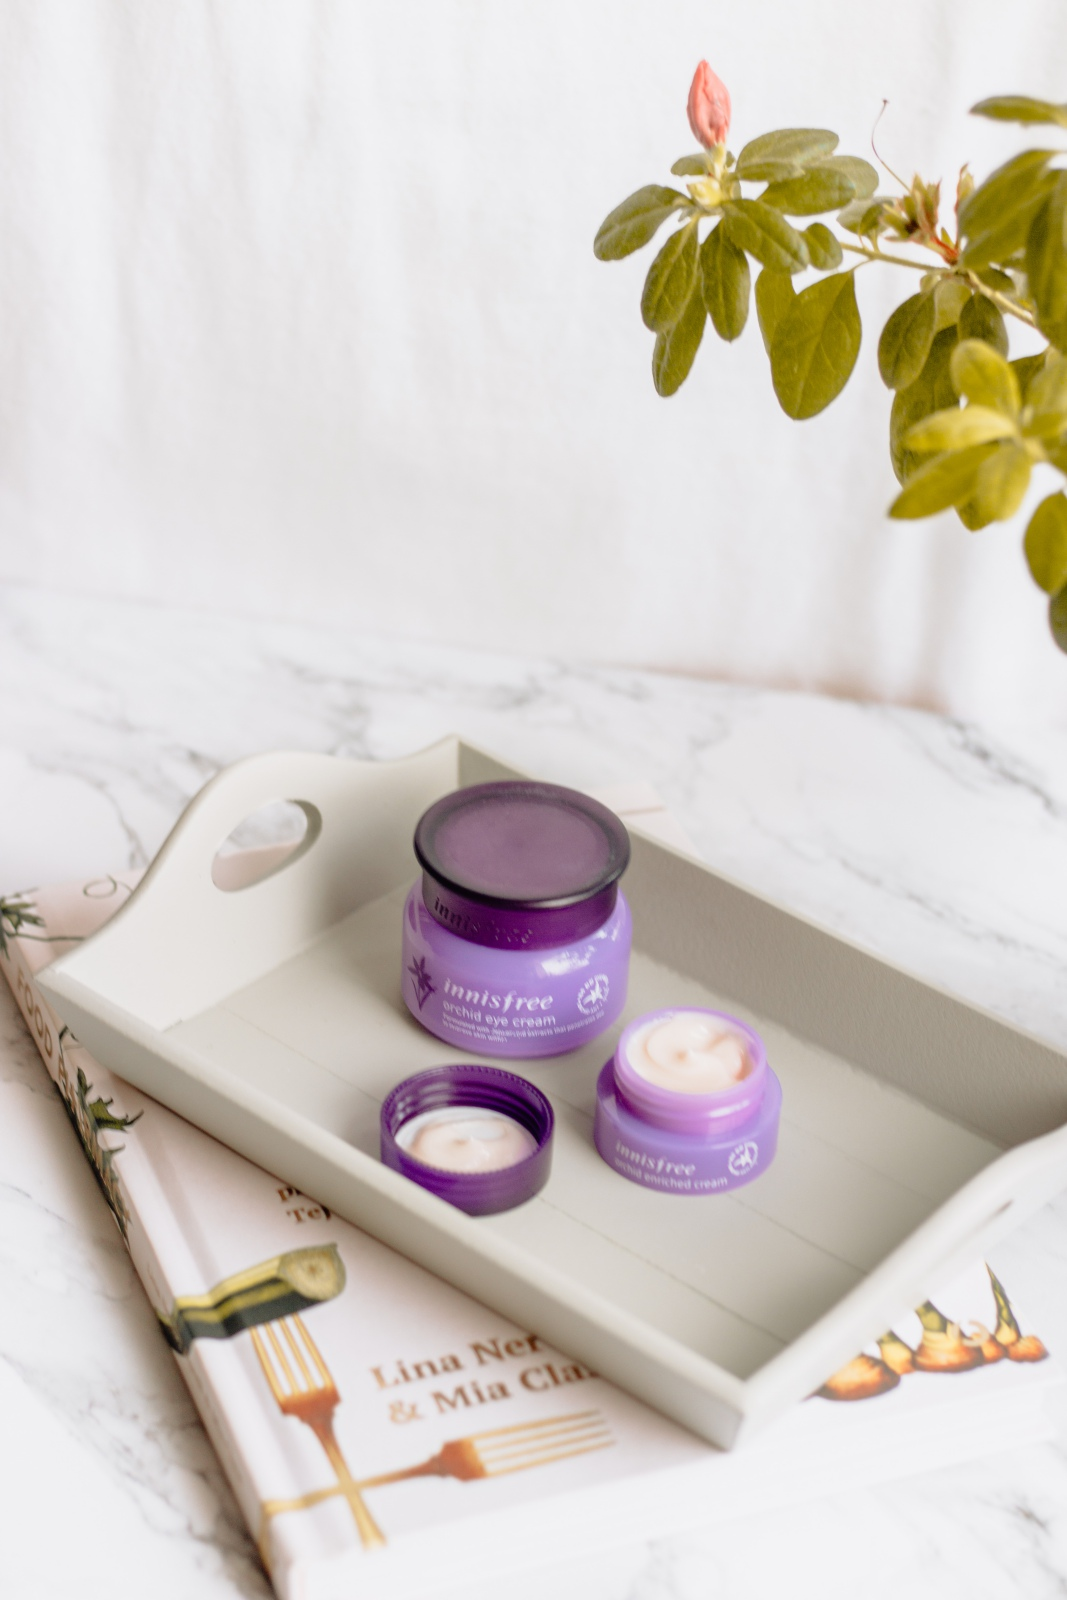 Innisfree Black Friday 2018: Save on Korean beauty brands like Innisfree Orchid Eye Cream and more. Find more deals and promocodes on Kherblog.com